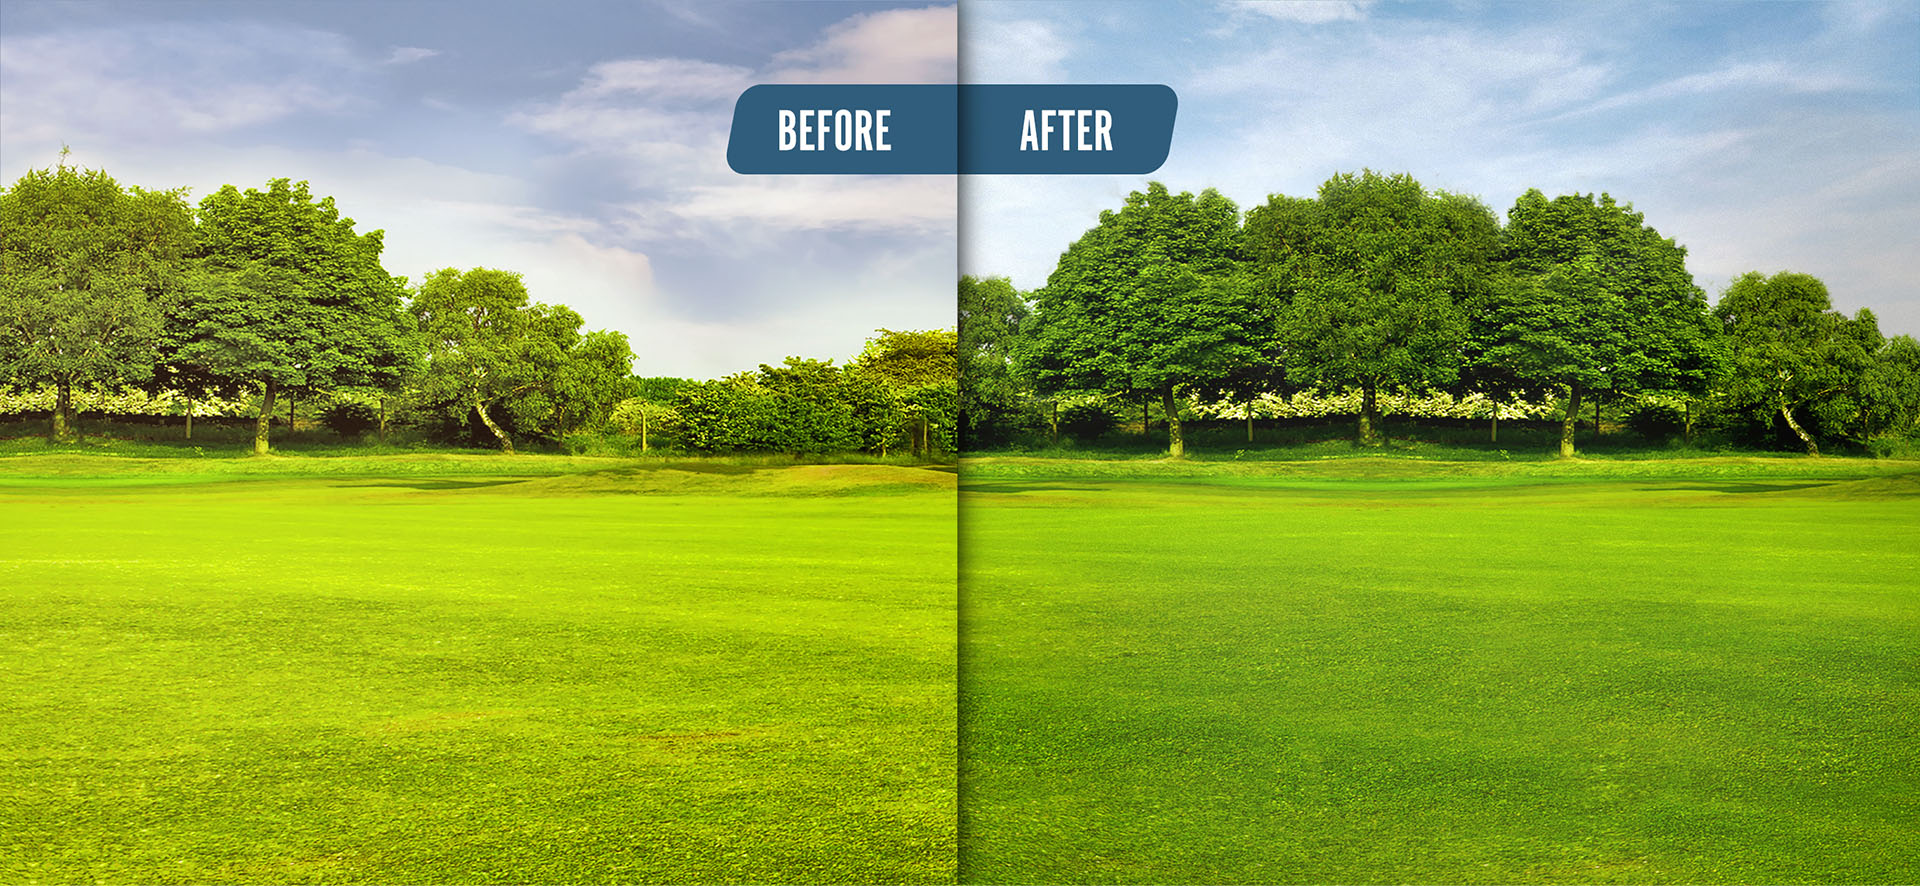 golf course before and after ETQ treatment